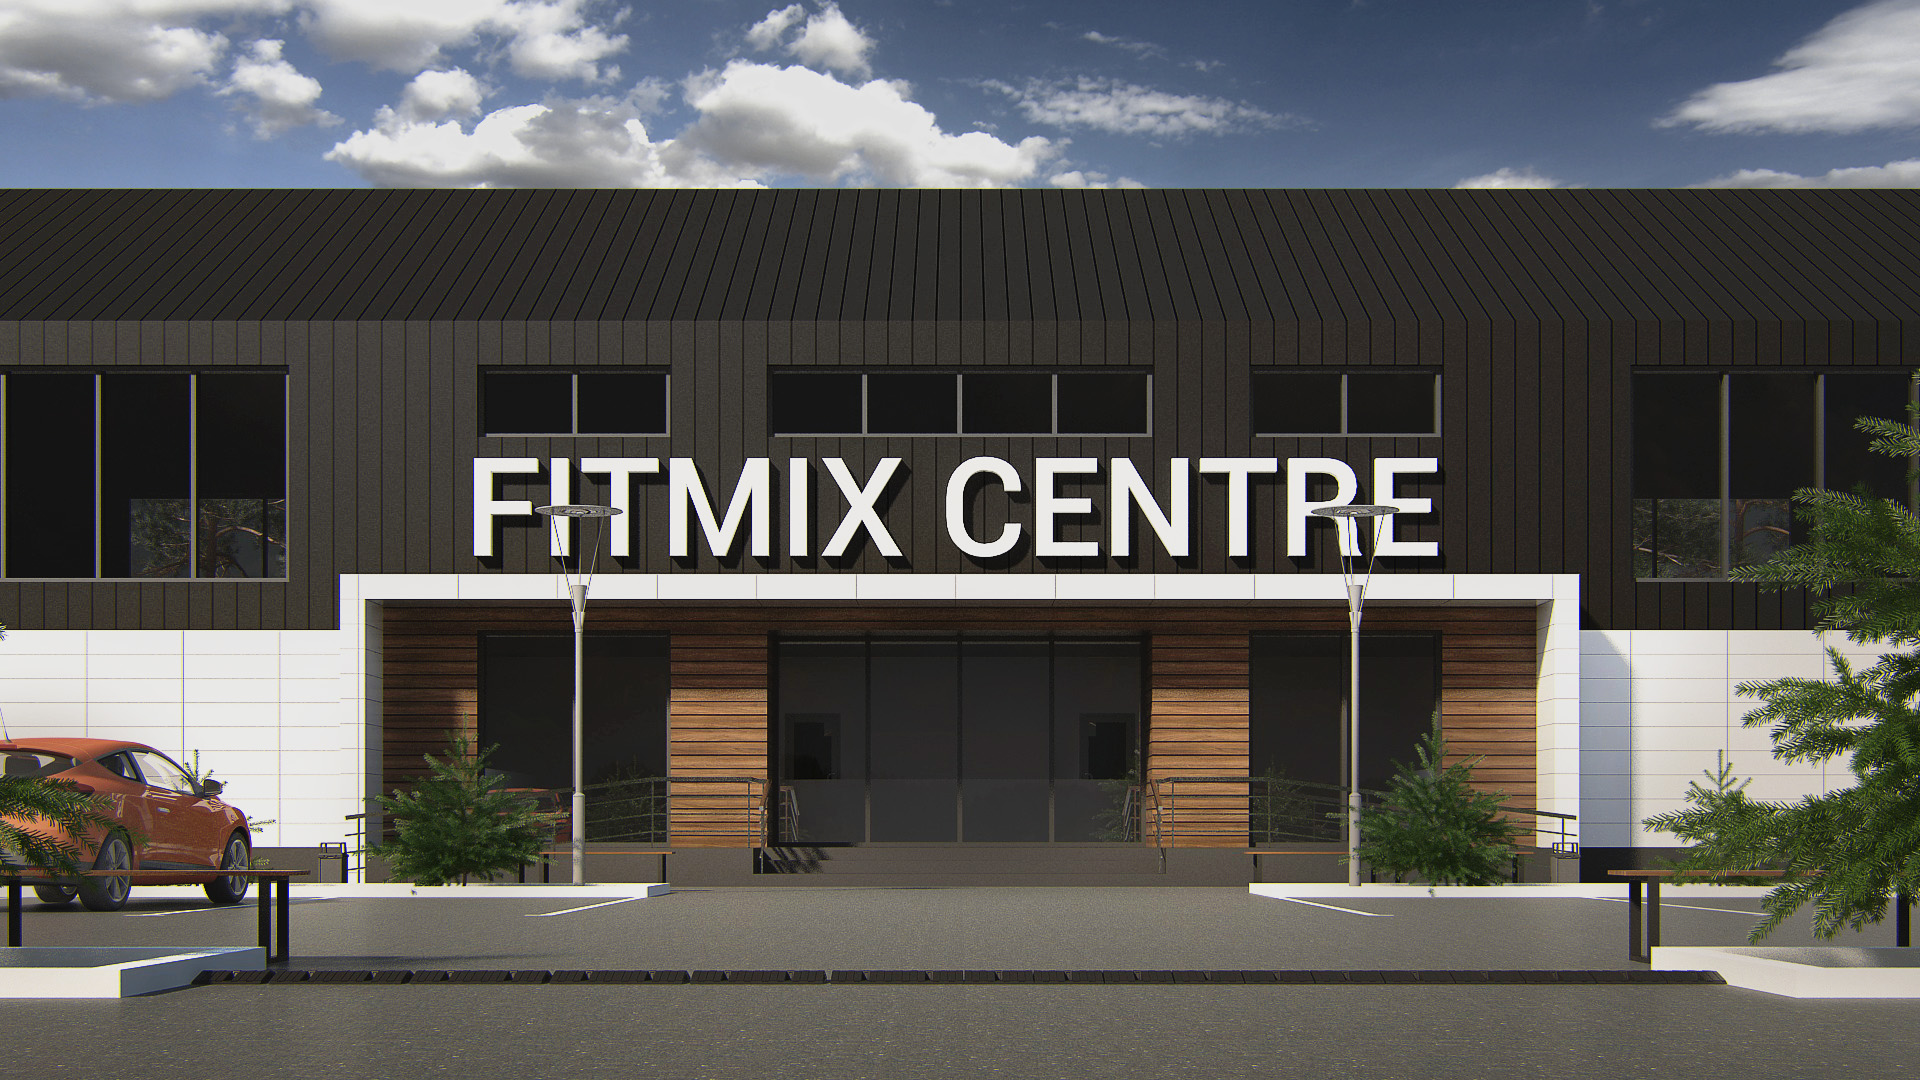 002-fitmixcentre